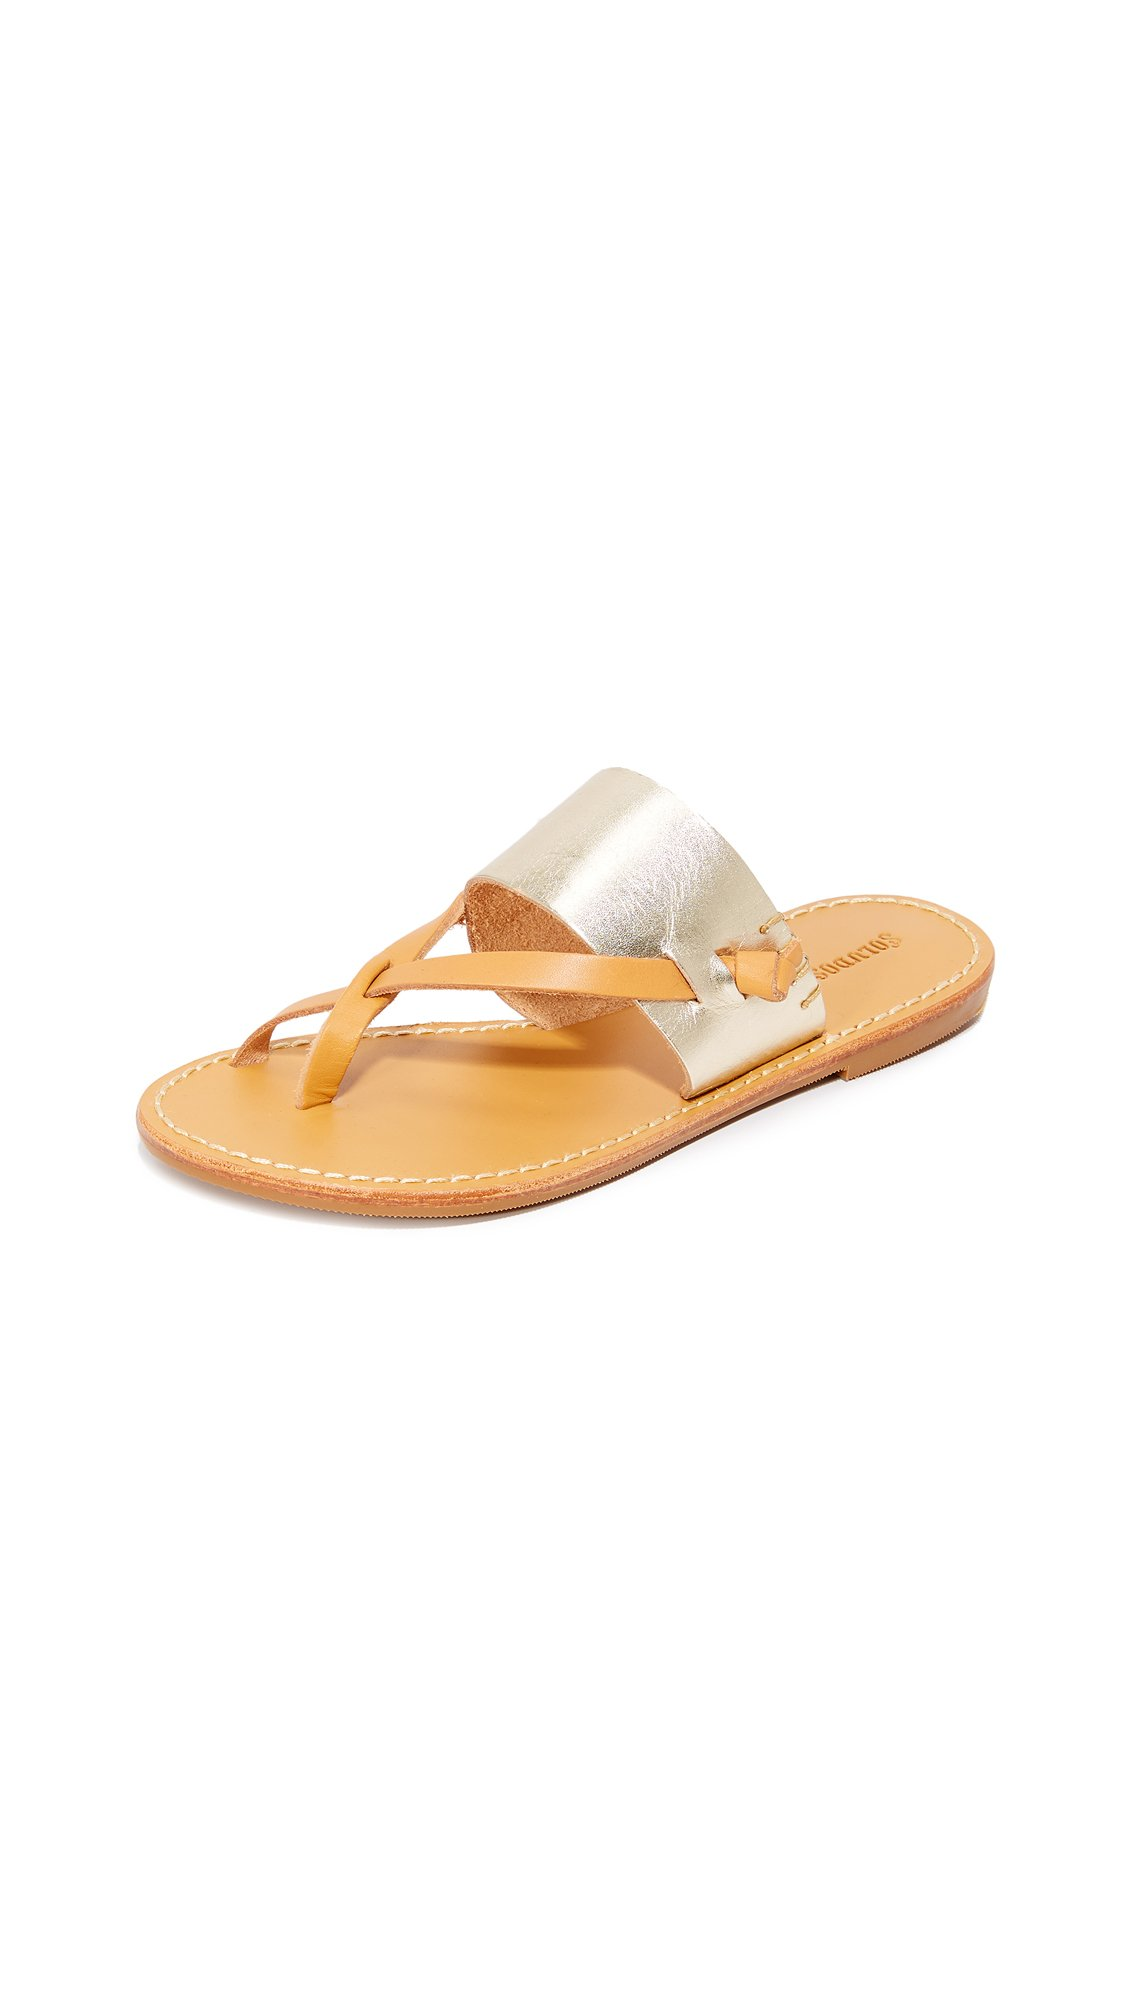 Soludos Women's Slotted Thong Sandals